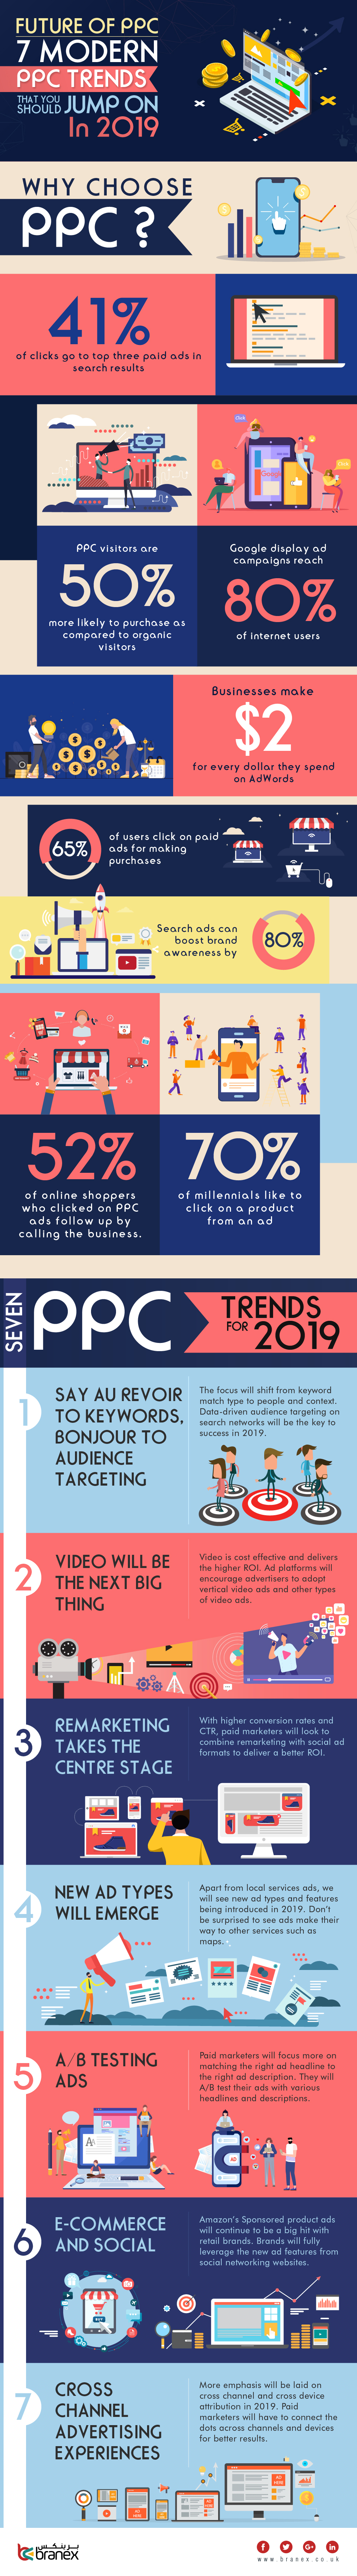 Future of PPC: 7 Modern PPC Trends That You Should Jump On In 2019 – Infographics